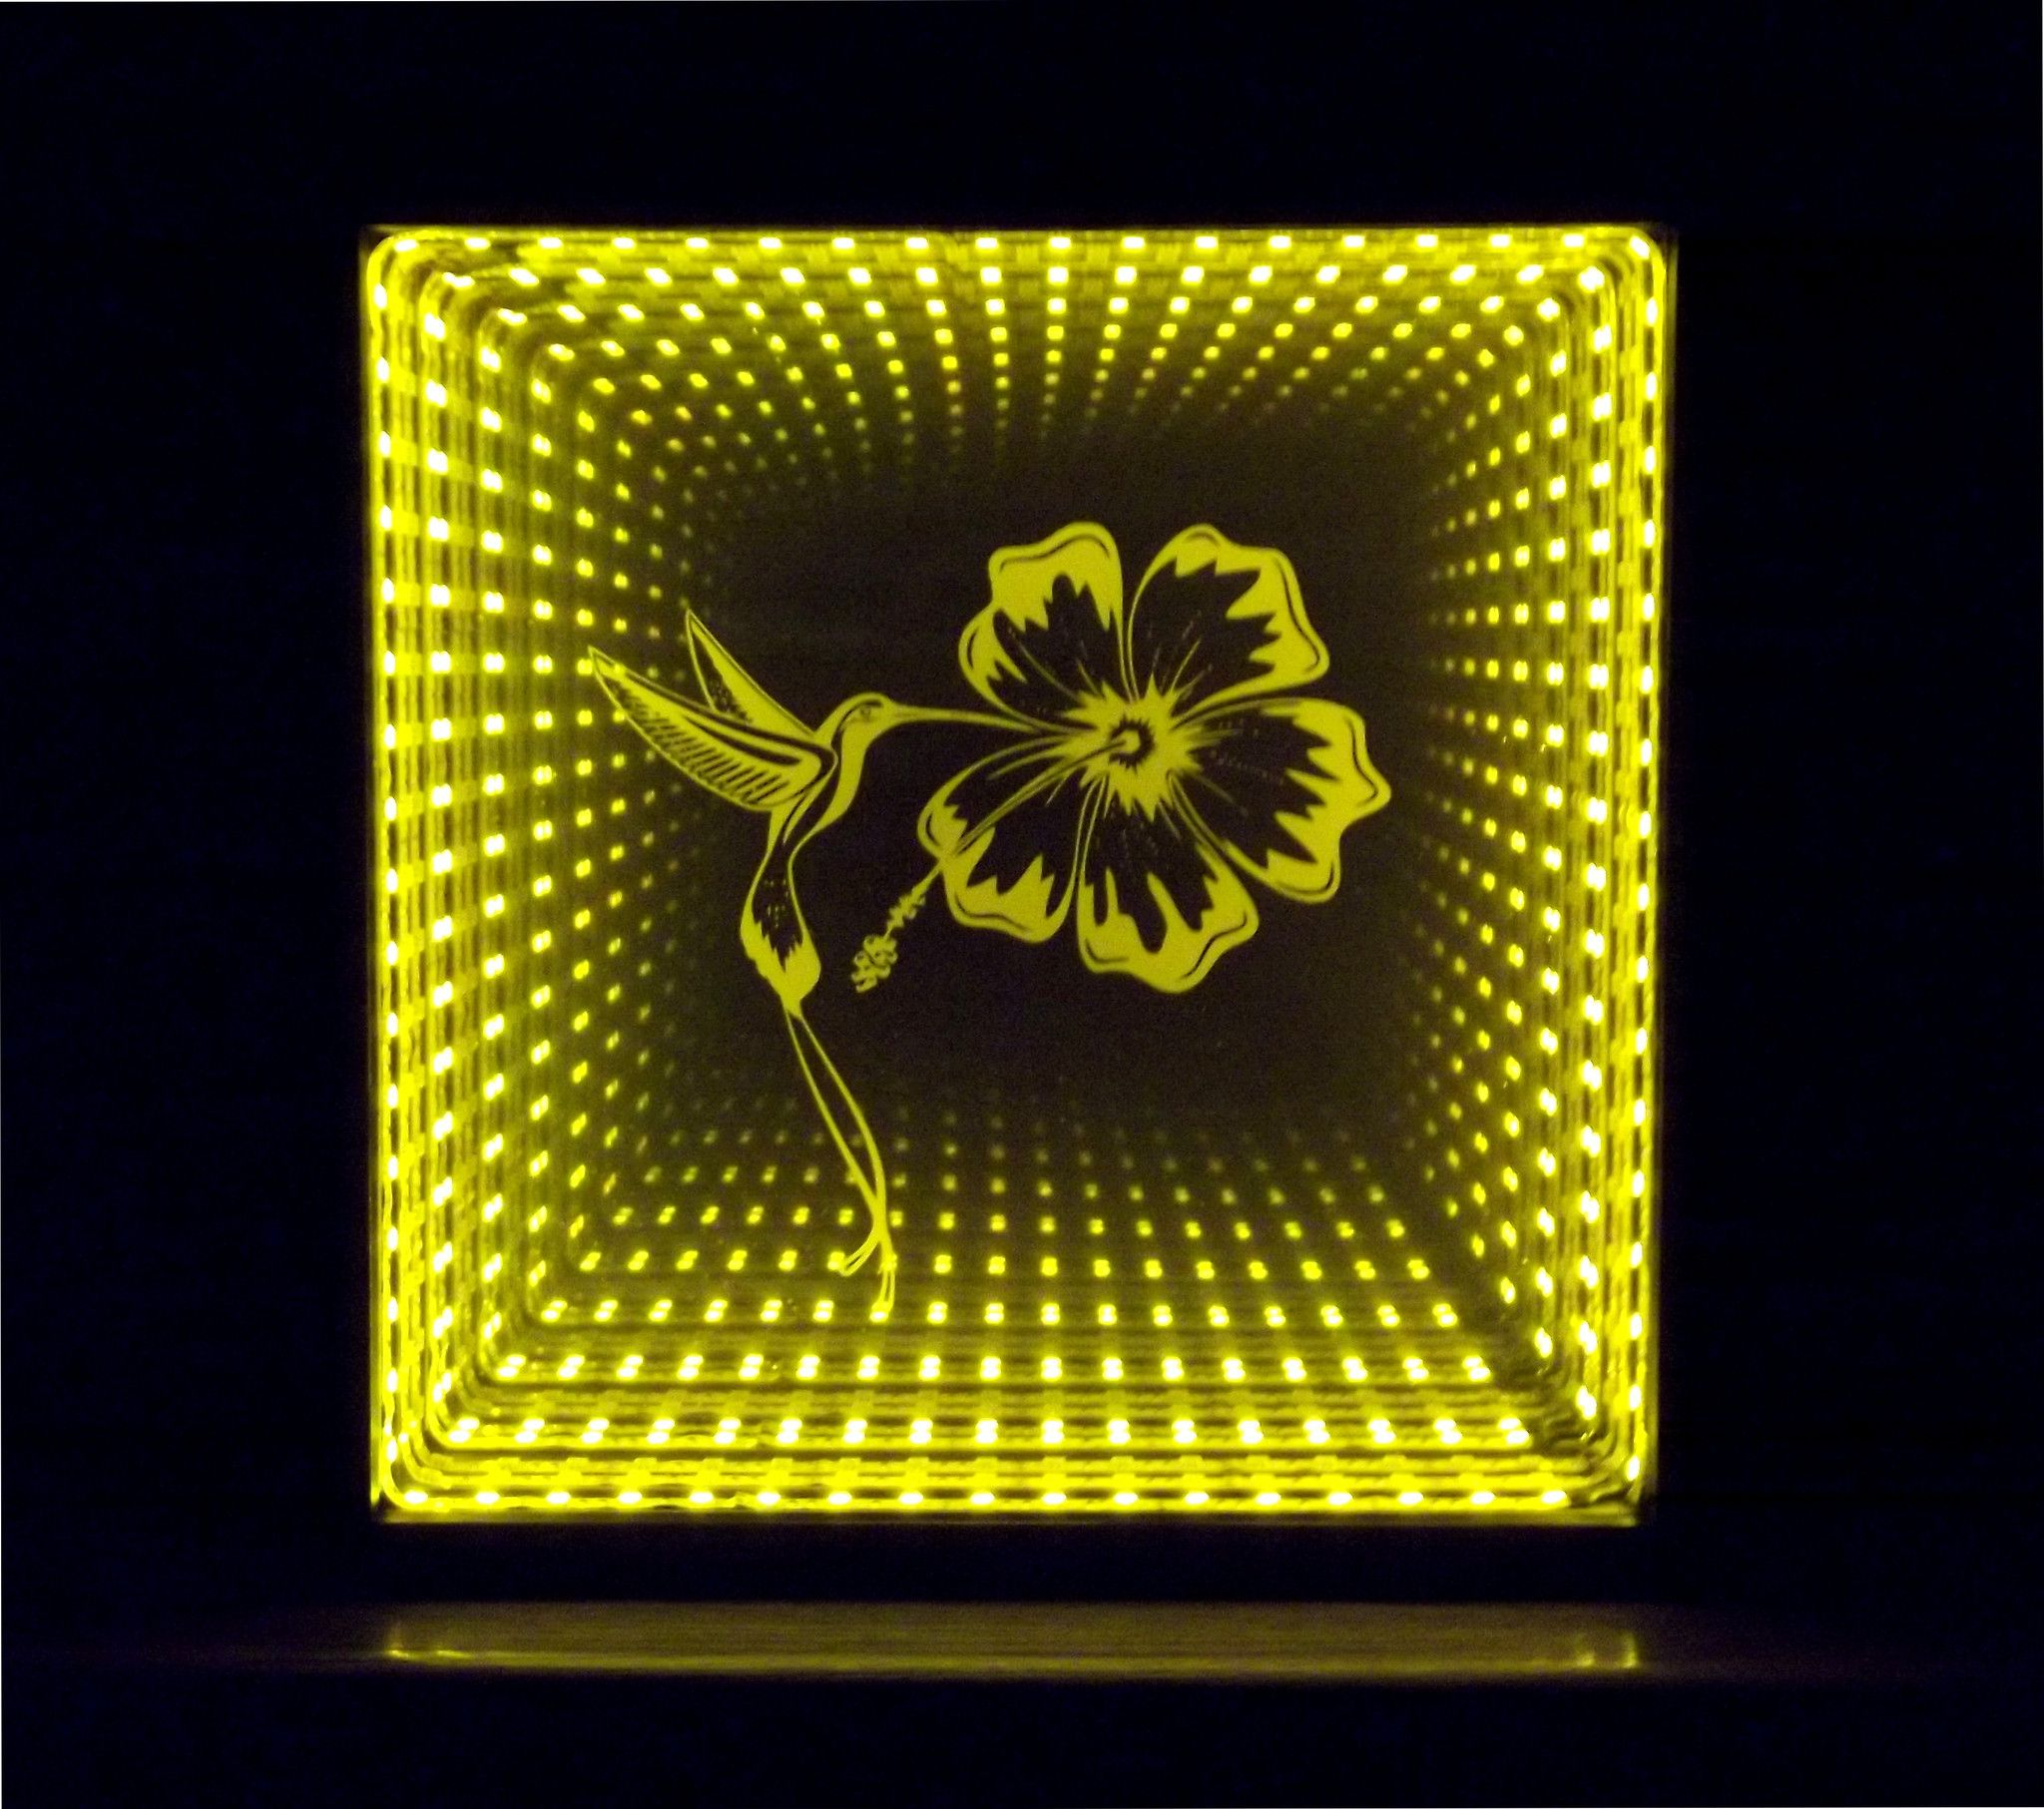 Led Lights Design: Engraved And LED Lighted Infinity Mirror.